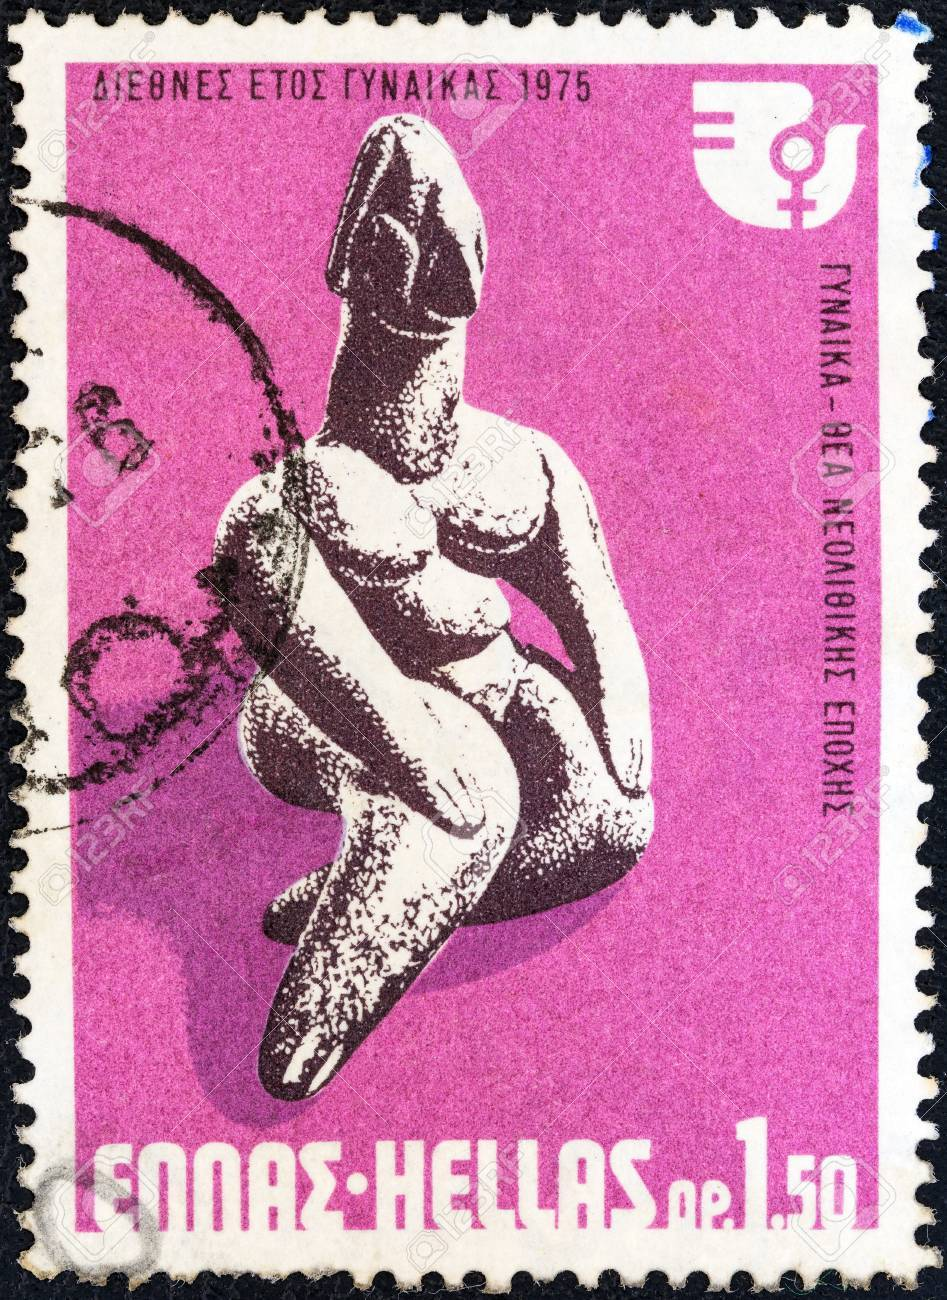 GREECE - CIRCA 1975: A stamp printed in Greece from the